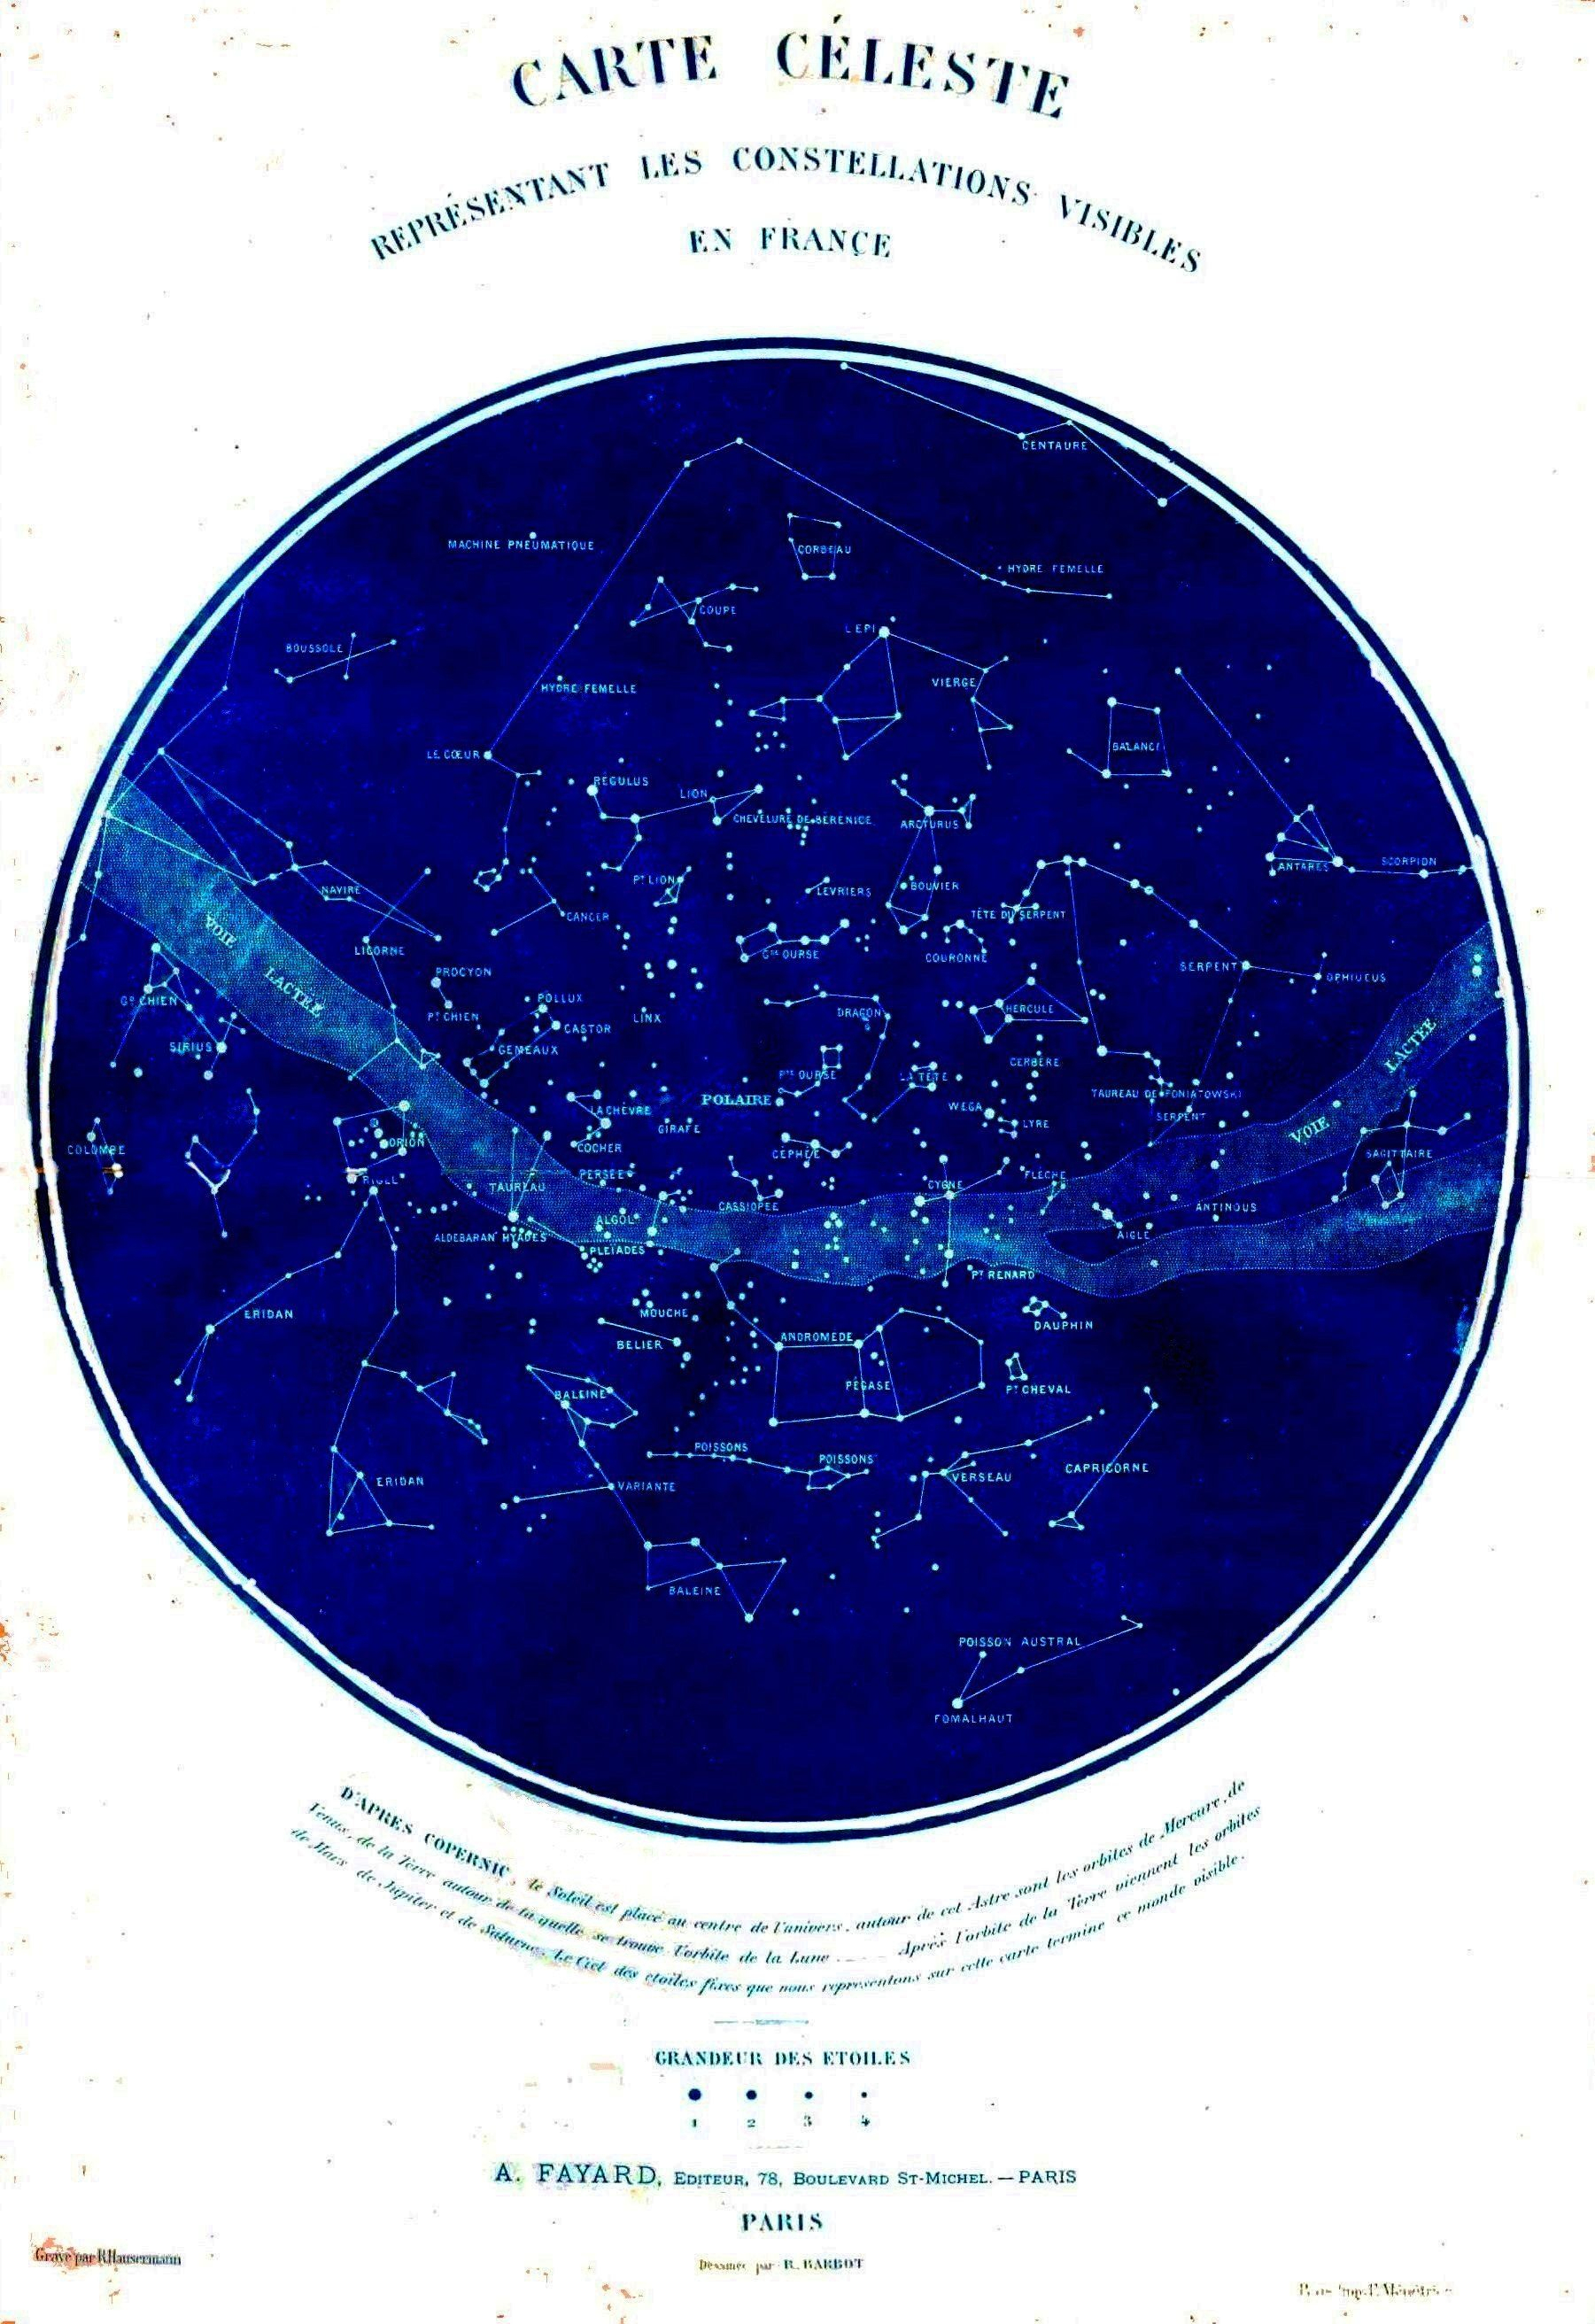 Science - Astronomy - Map - Celestial Map Of Constellations Visible - Printable Constellation Map